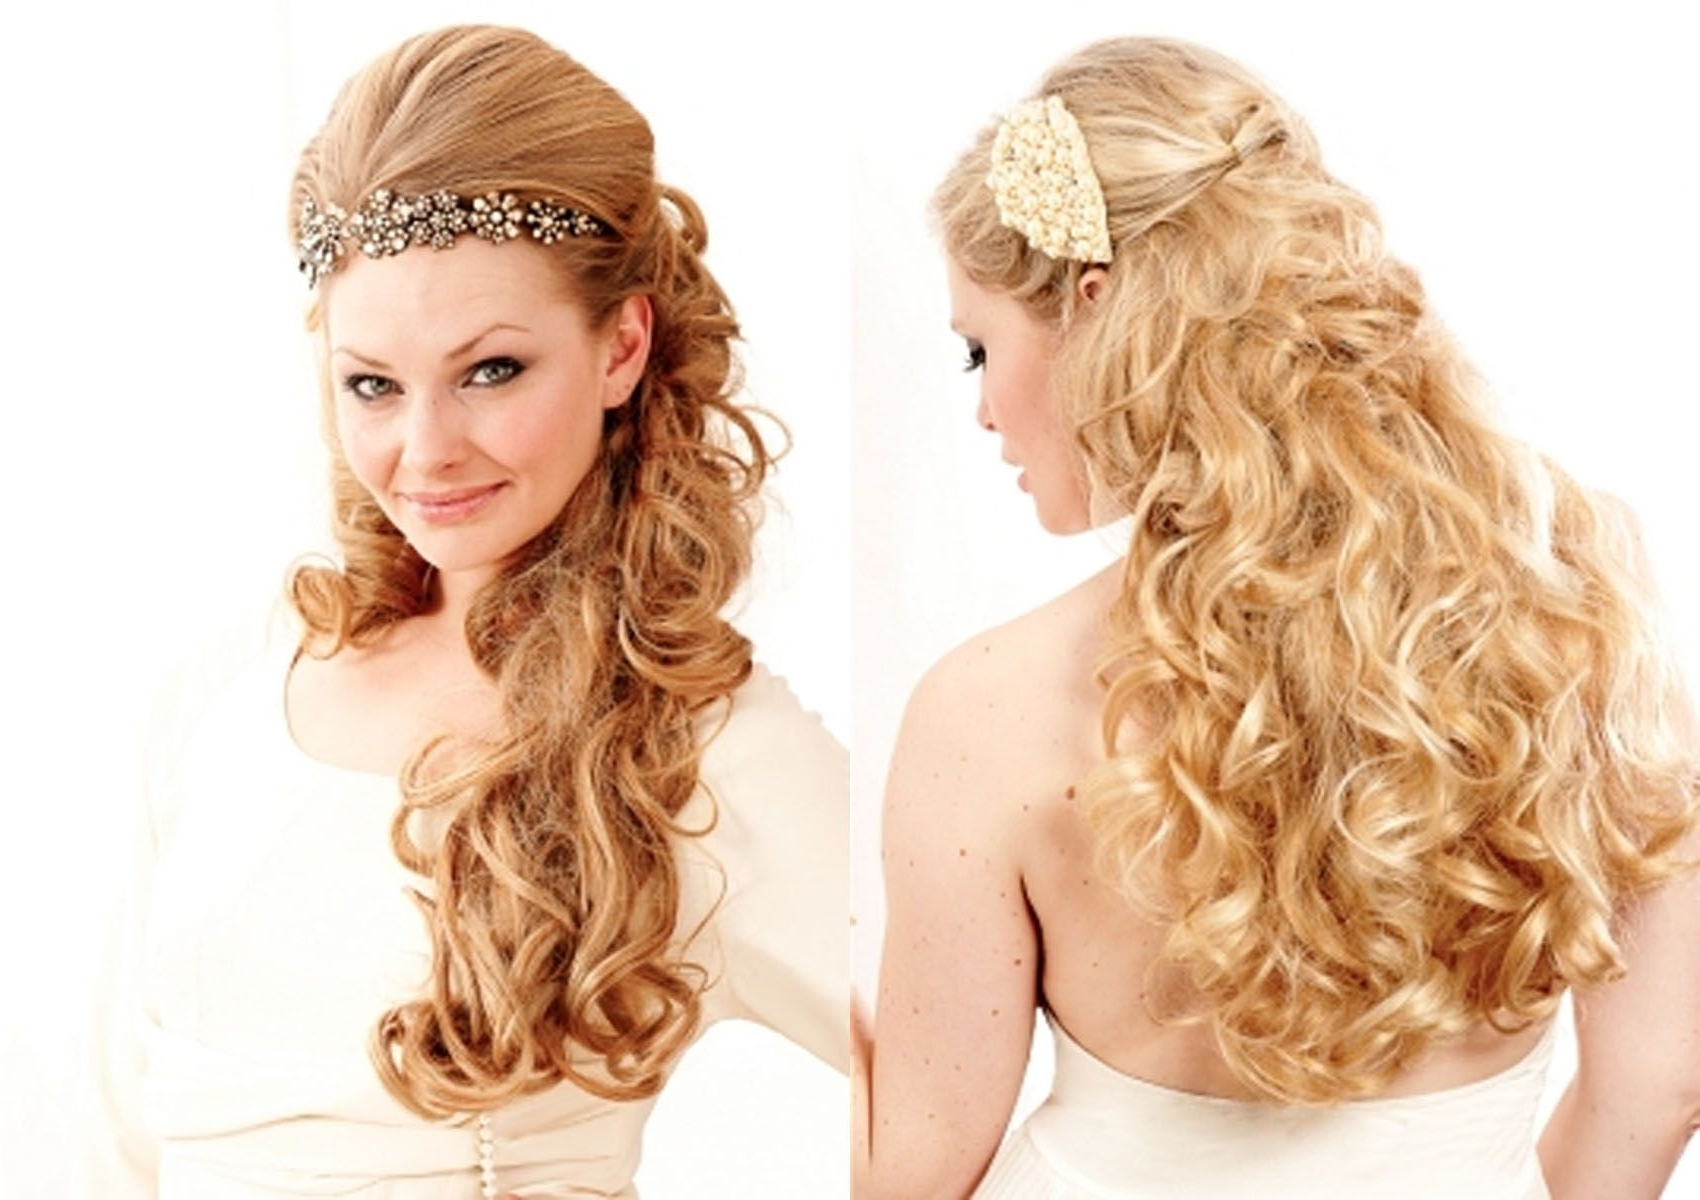 2017 Wedding Hairstyles For Long Hair With Headband With 20s Hairstyles For Long Hair Headband (View 14 of 15)